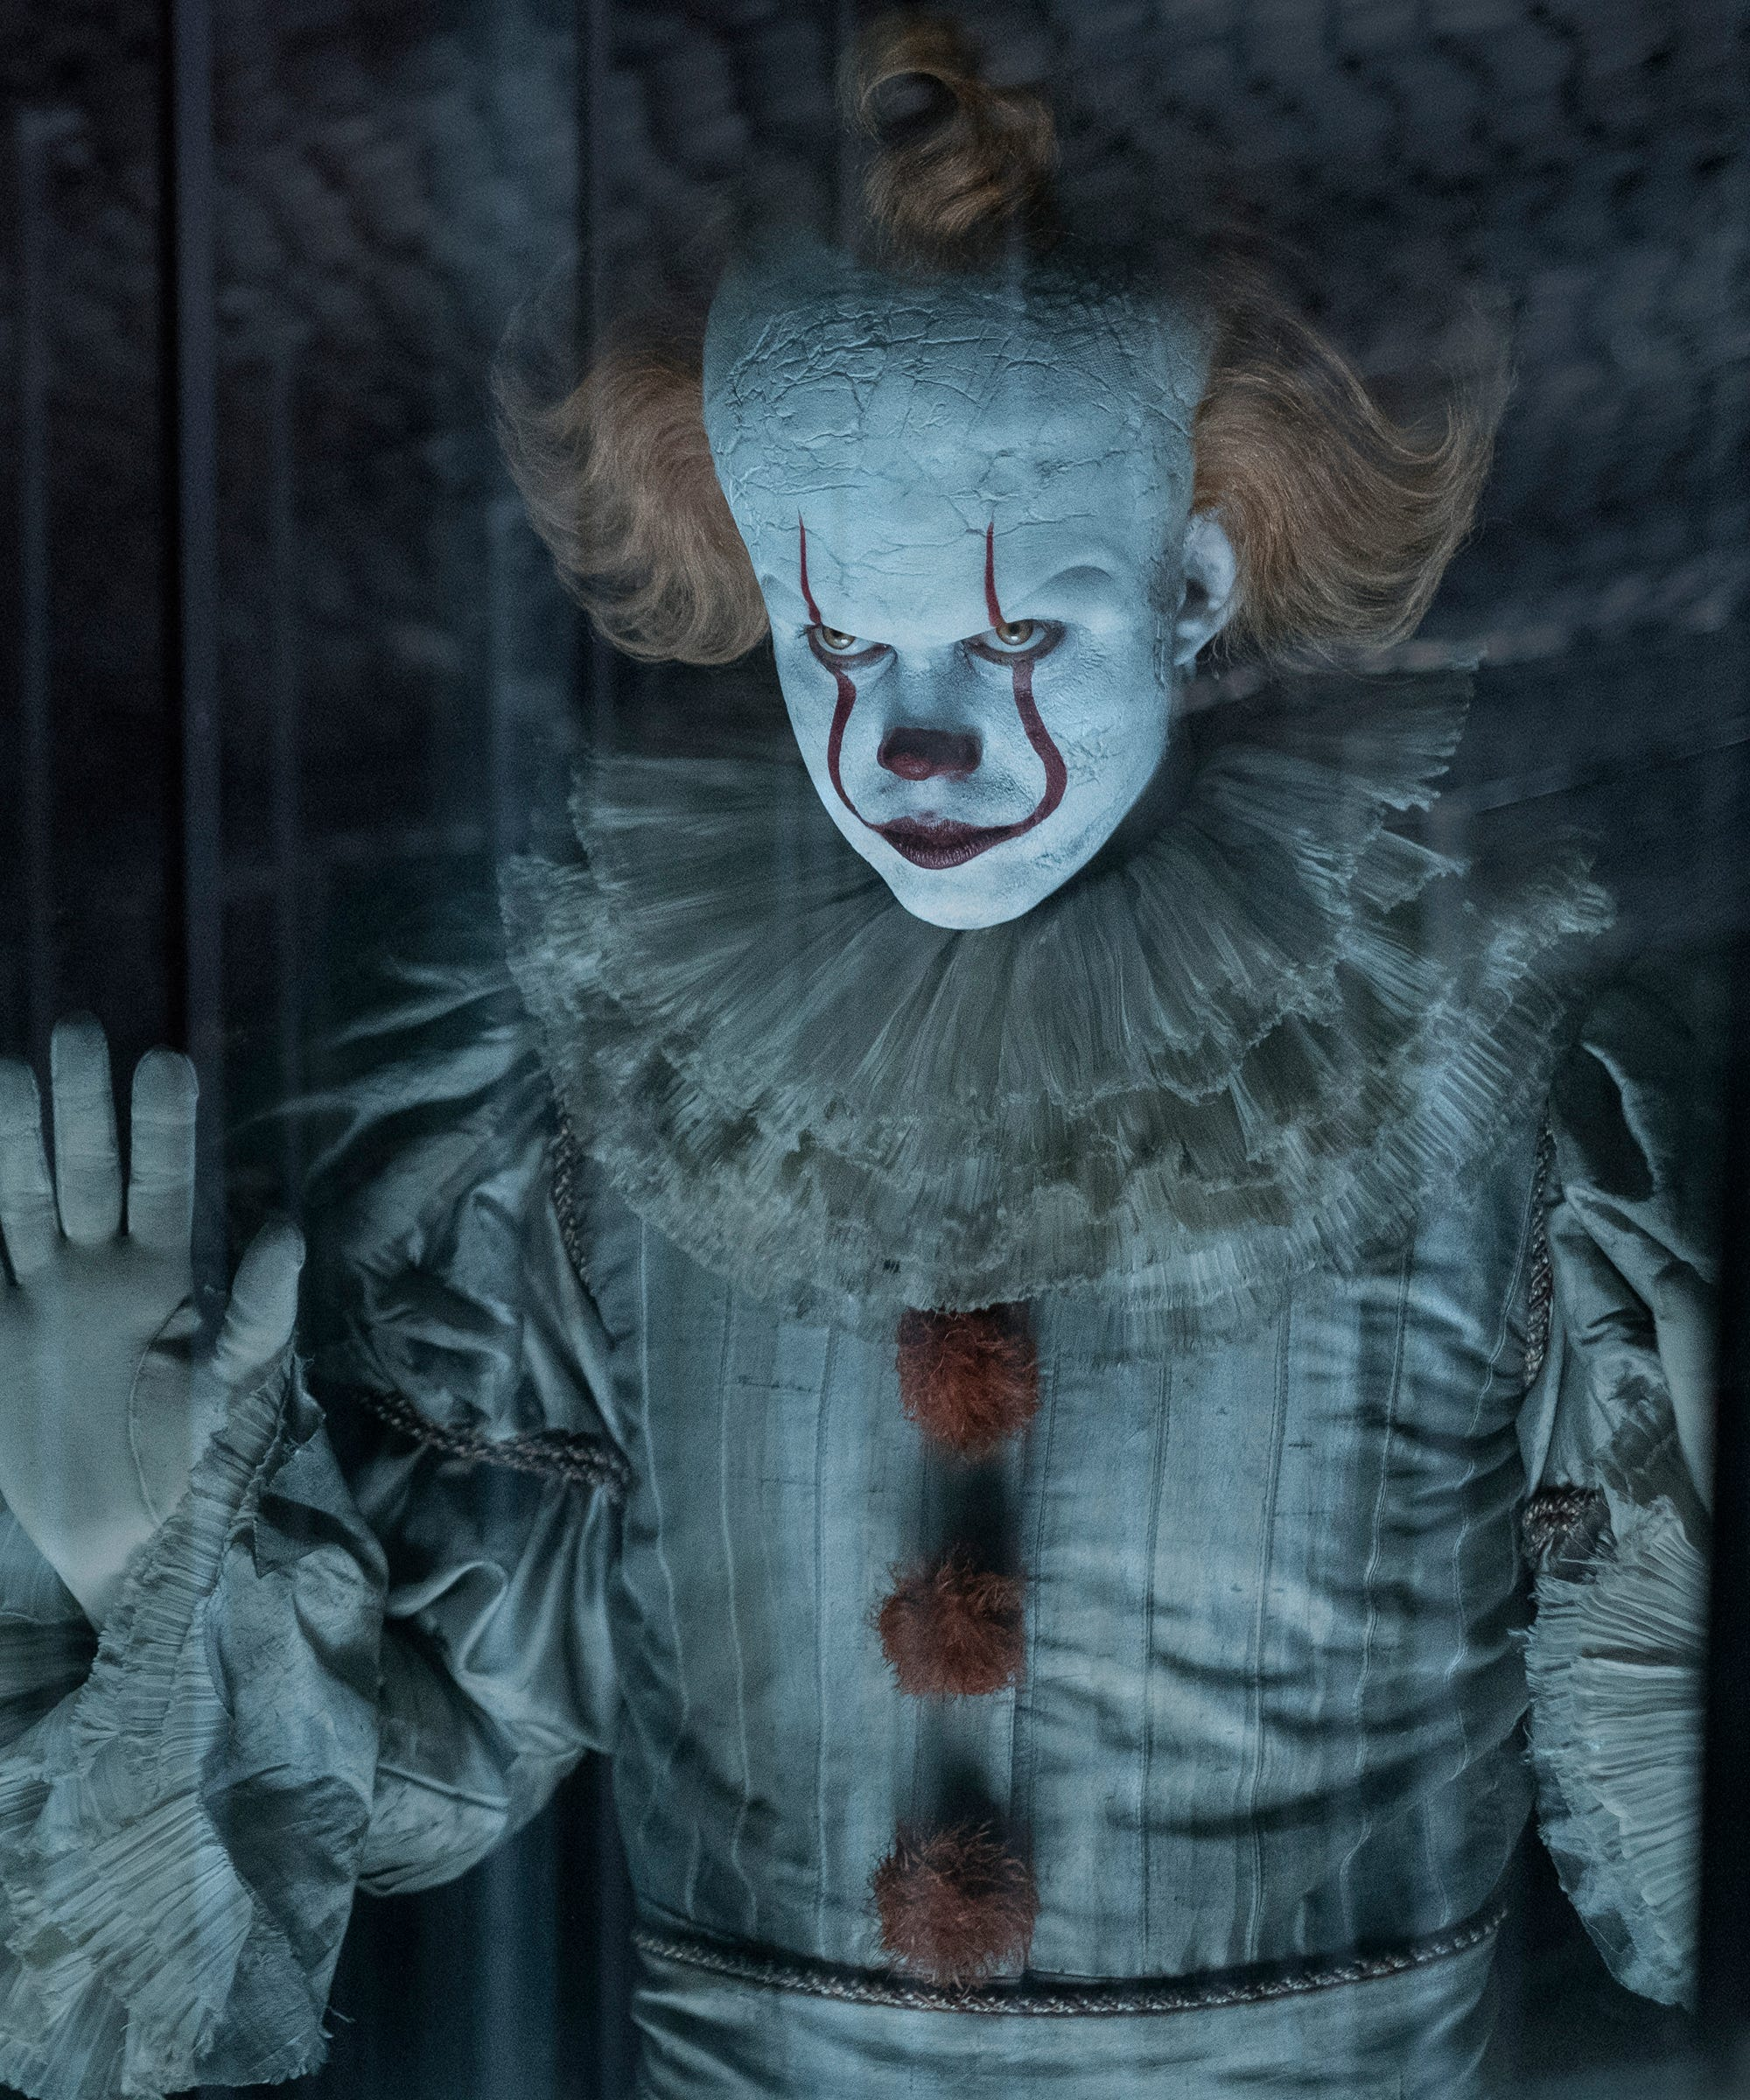 IT Chapter 2 Forgets What Made Pennywise So Scary